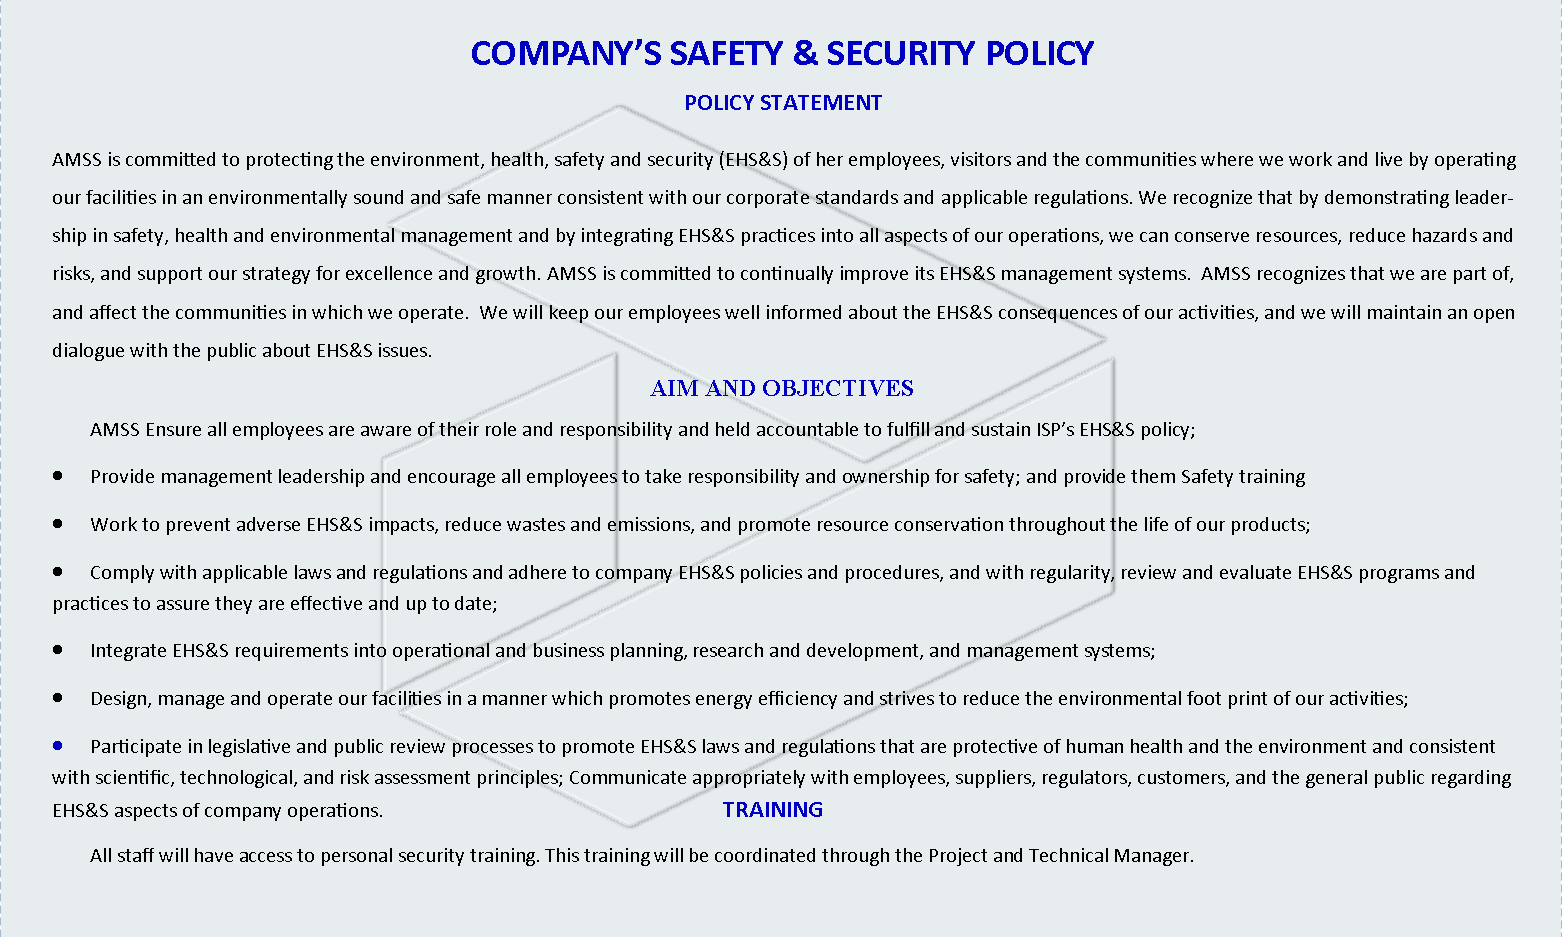 COMPANY SAFETY & SECURITY POLICY